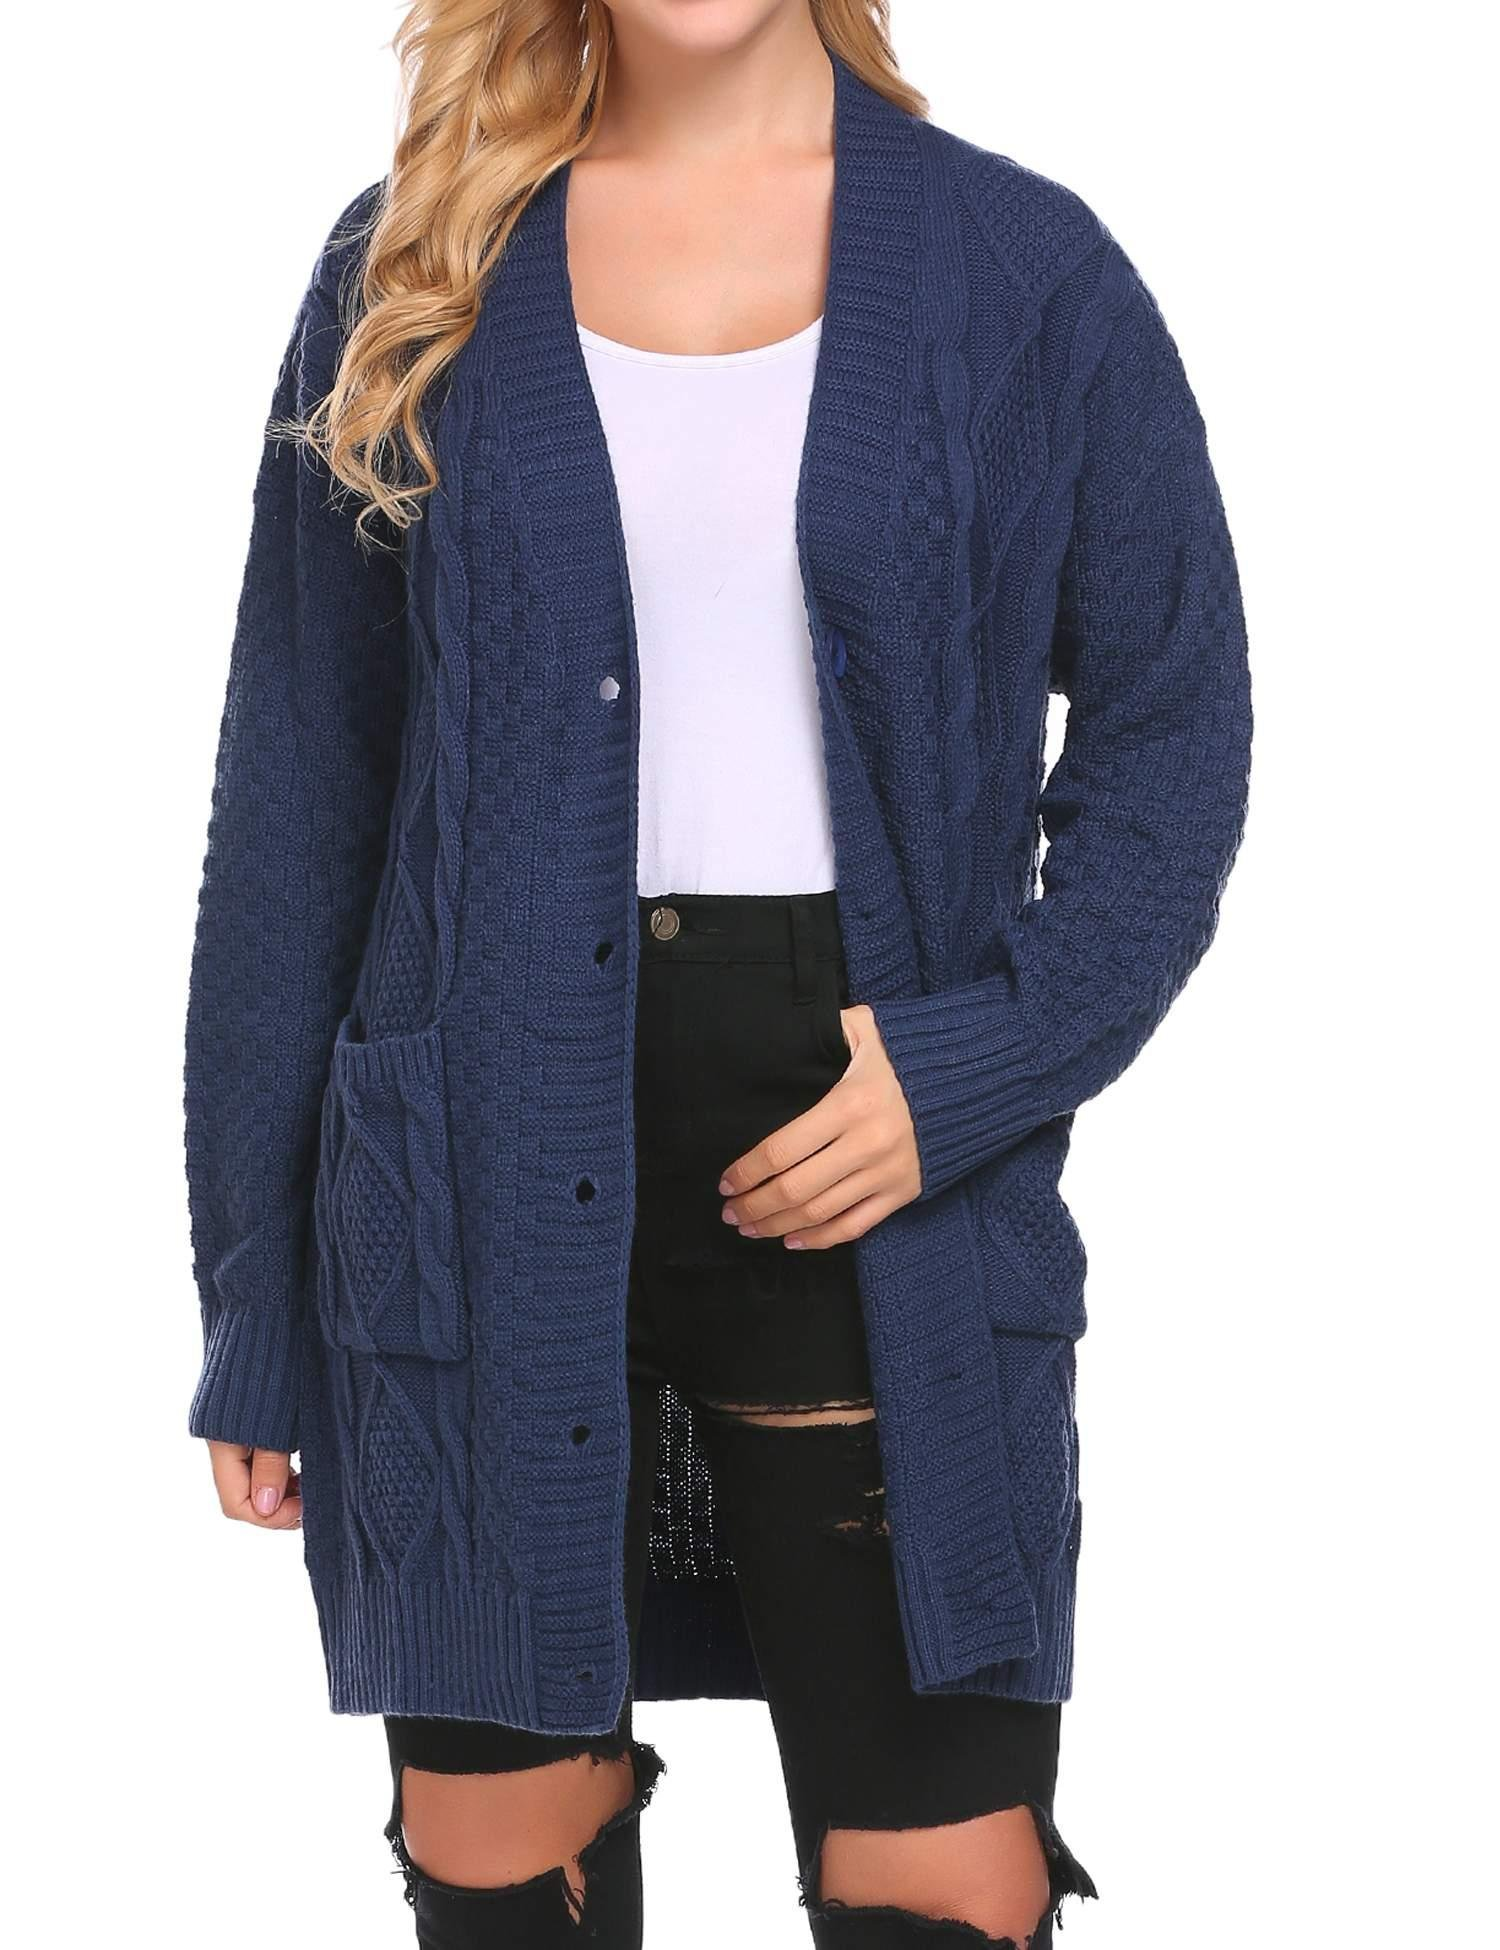 Soteer Women's Cable Twist School Wear Boyfriend Pocket Knit Button Cardigan (Navy, XL)